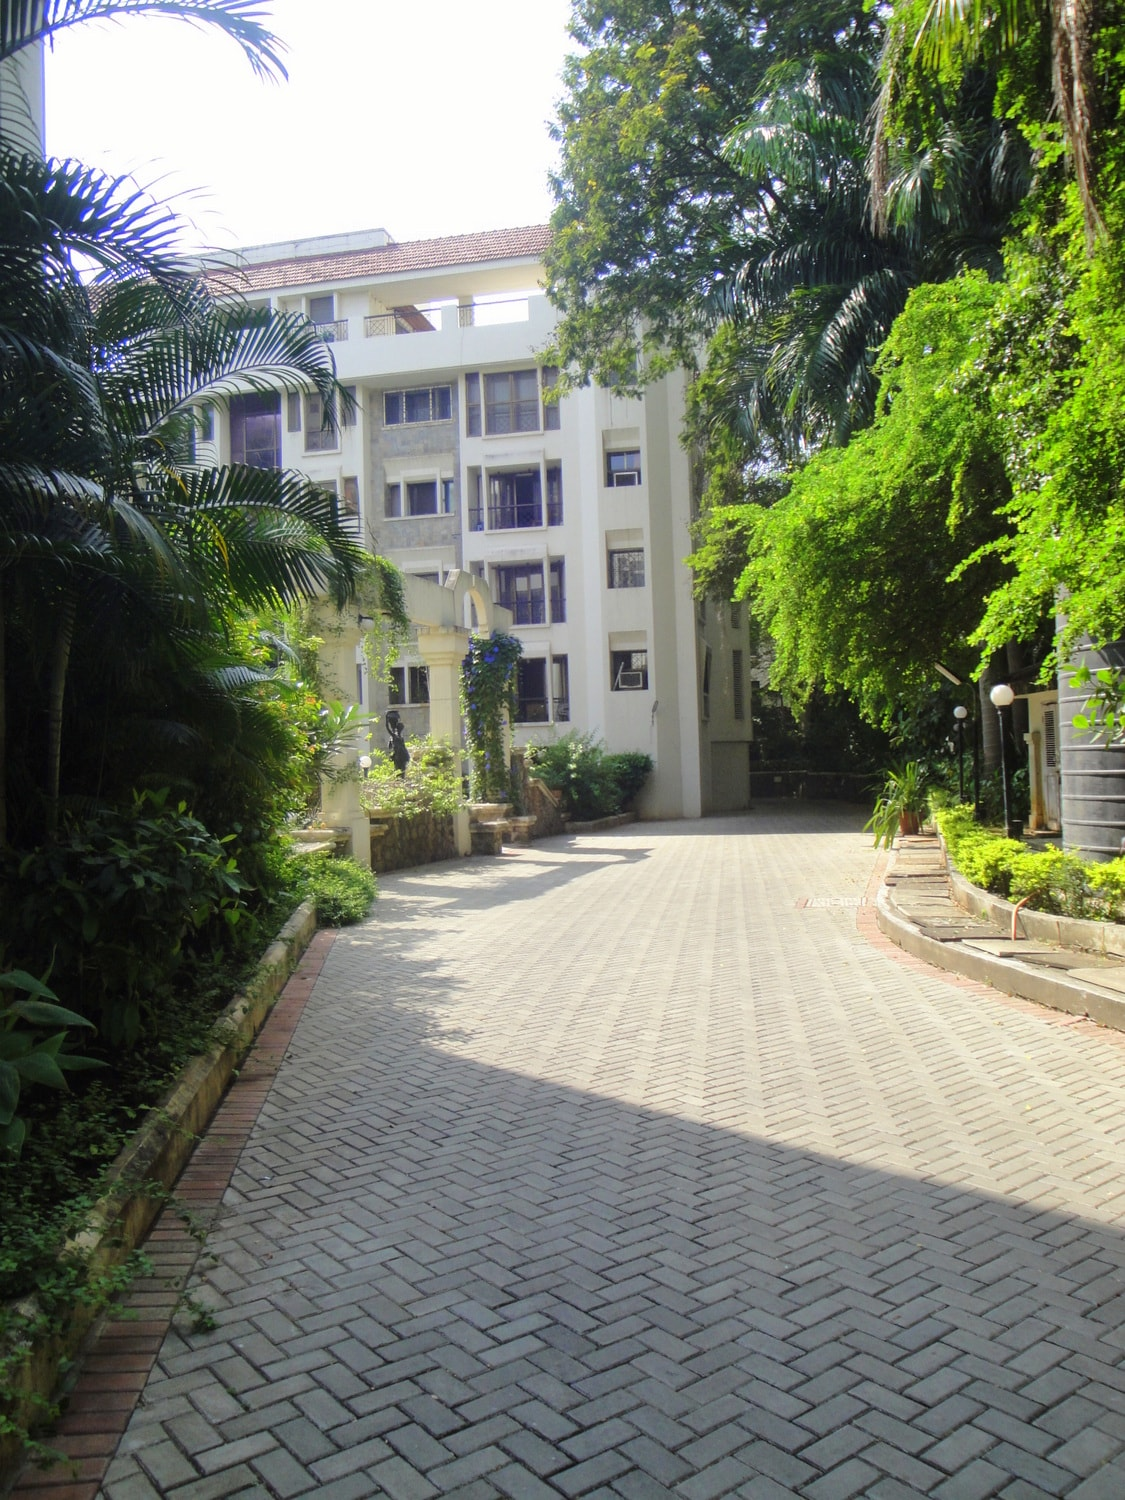 Path in the society